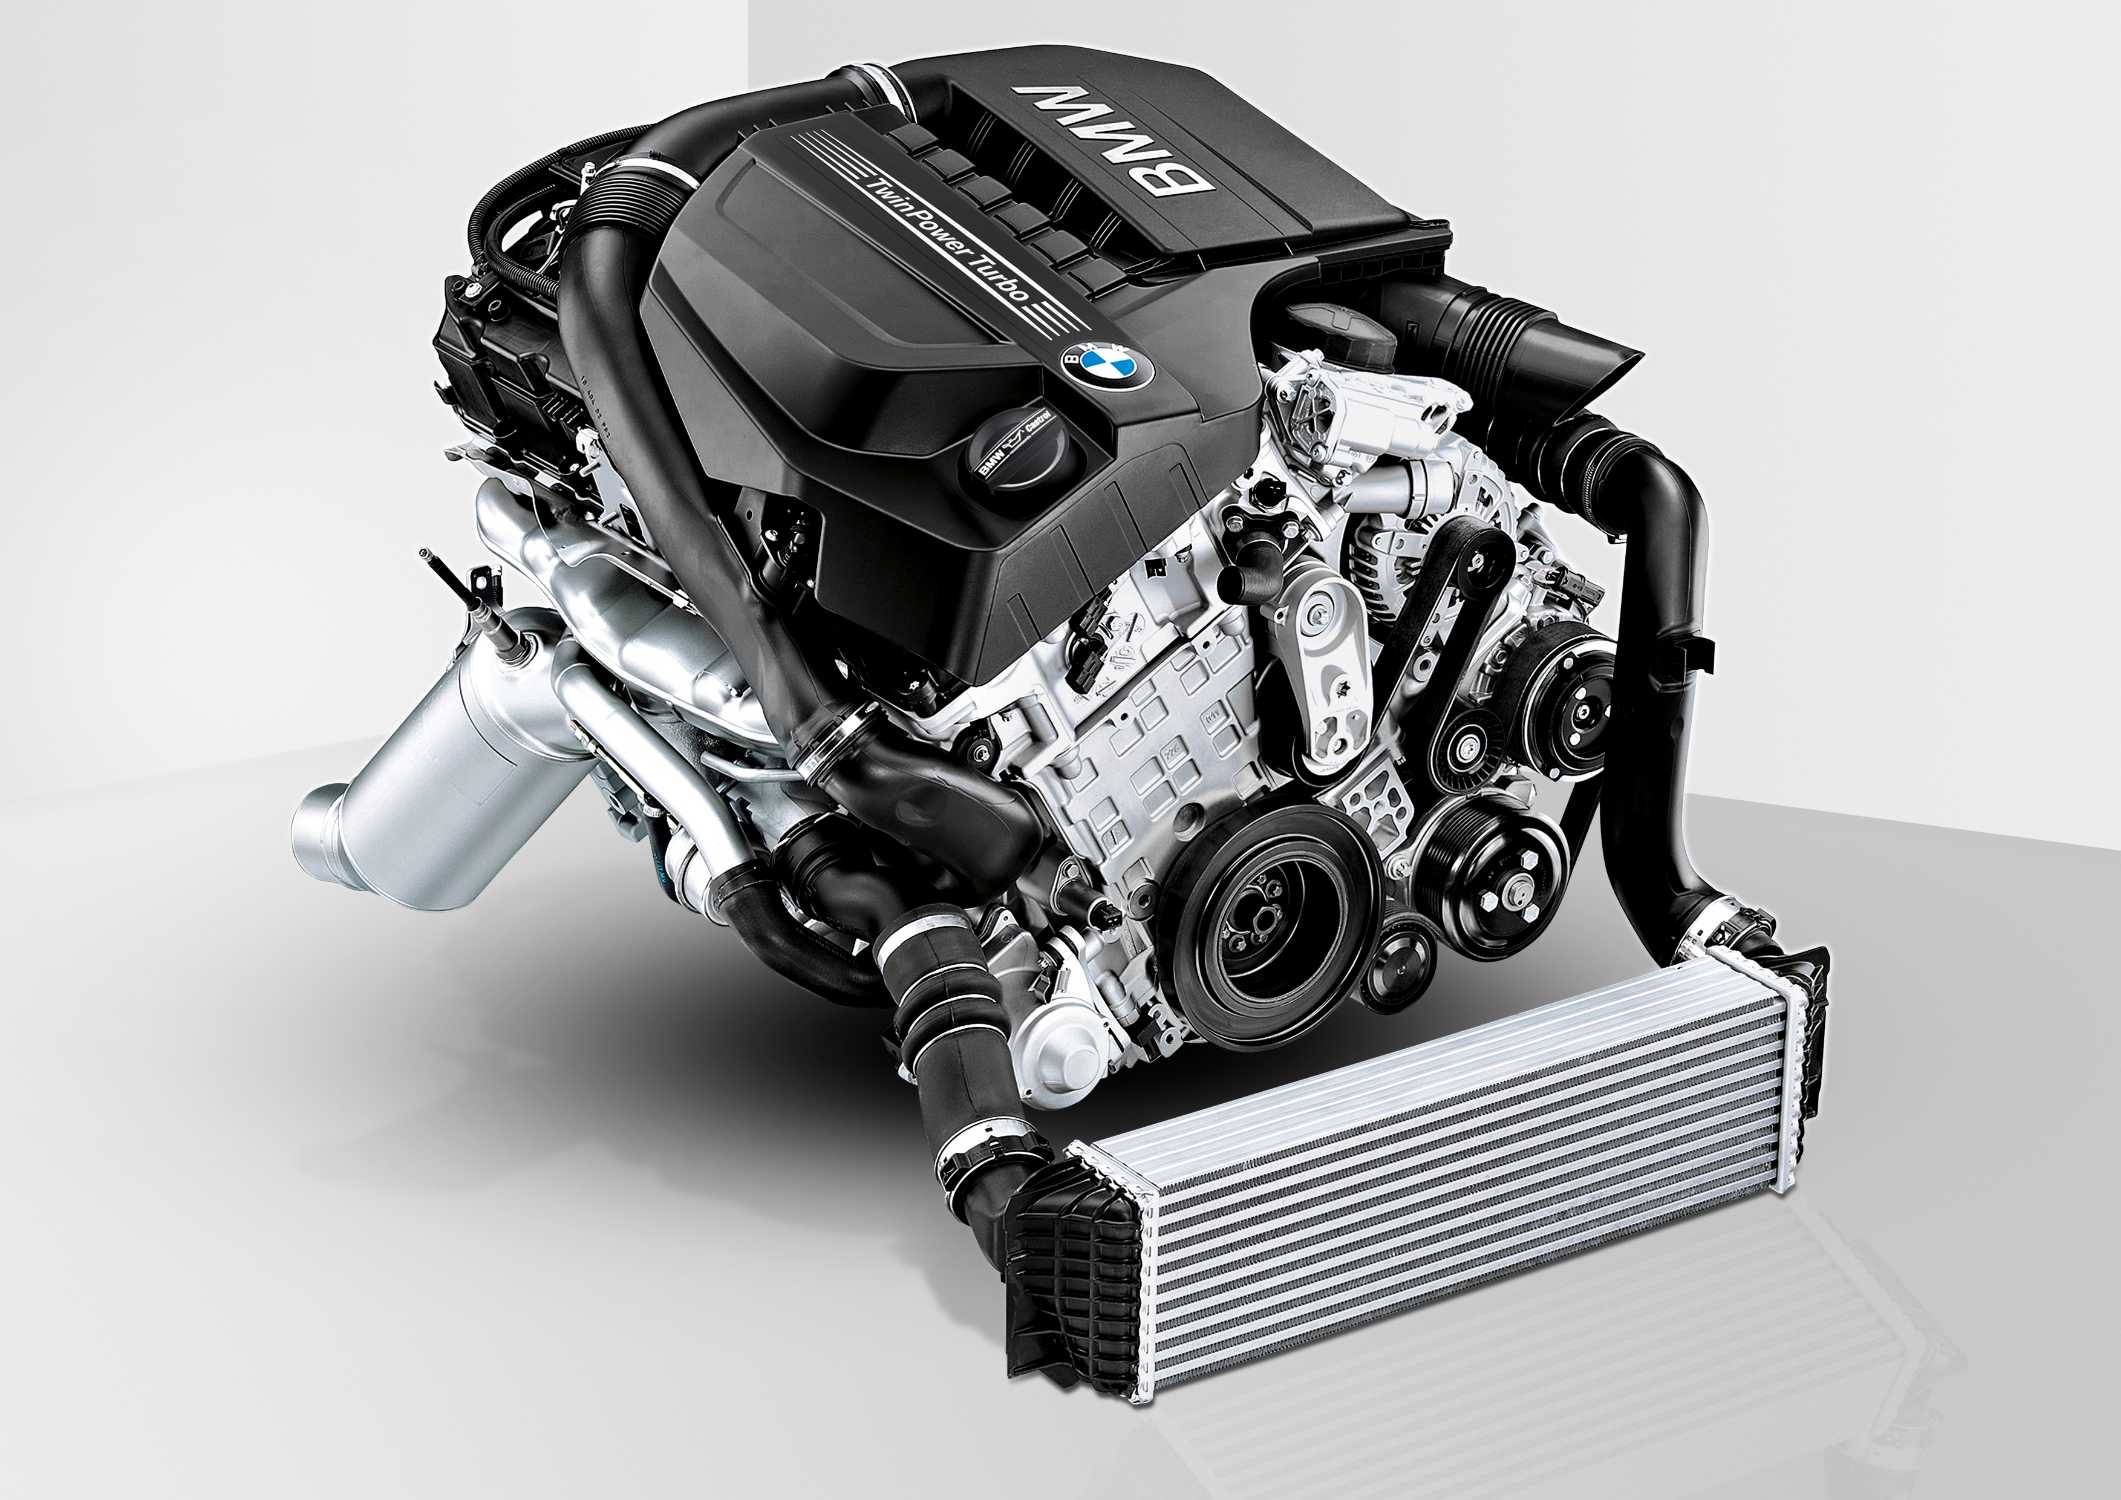 3 0 Litre Bmw Twin Turbo In Line Six Cylinder Gasoline Engine 06 2017